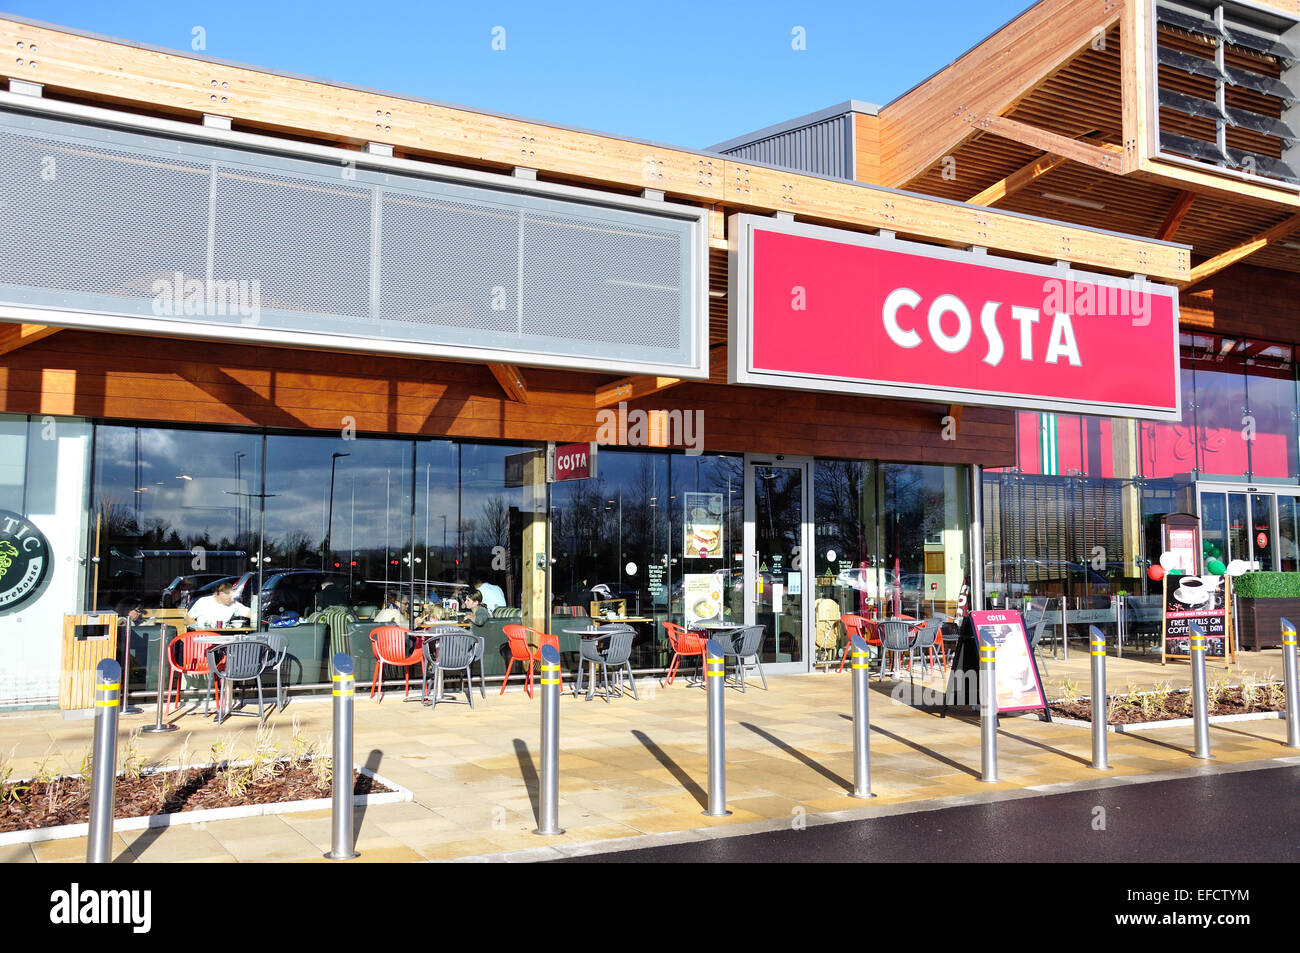 Costa coffee shop, The Bishop Centre, Taplow, Buckinghamshire, England, United Kingdom - Stock Image